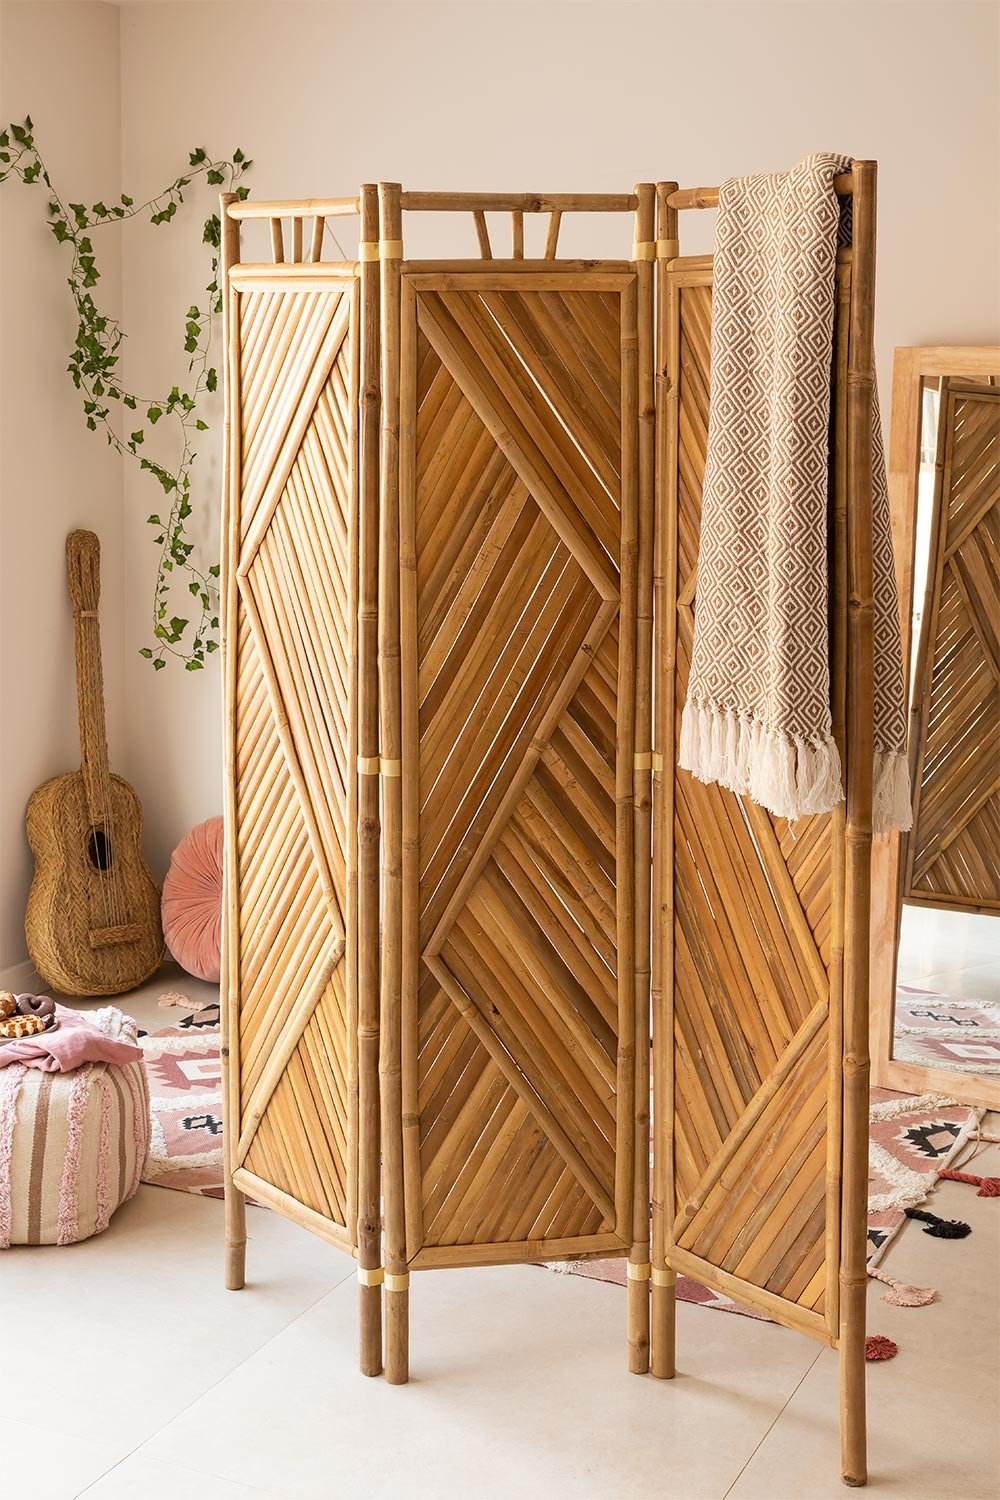 Bamboo Screen Stanly, gallery image 1